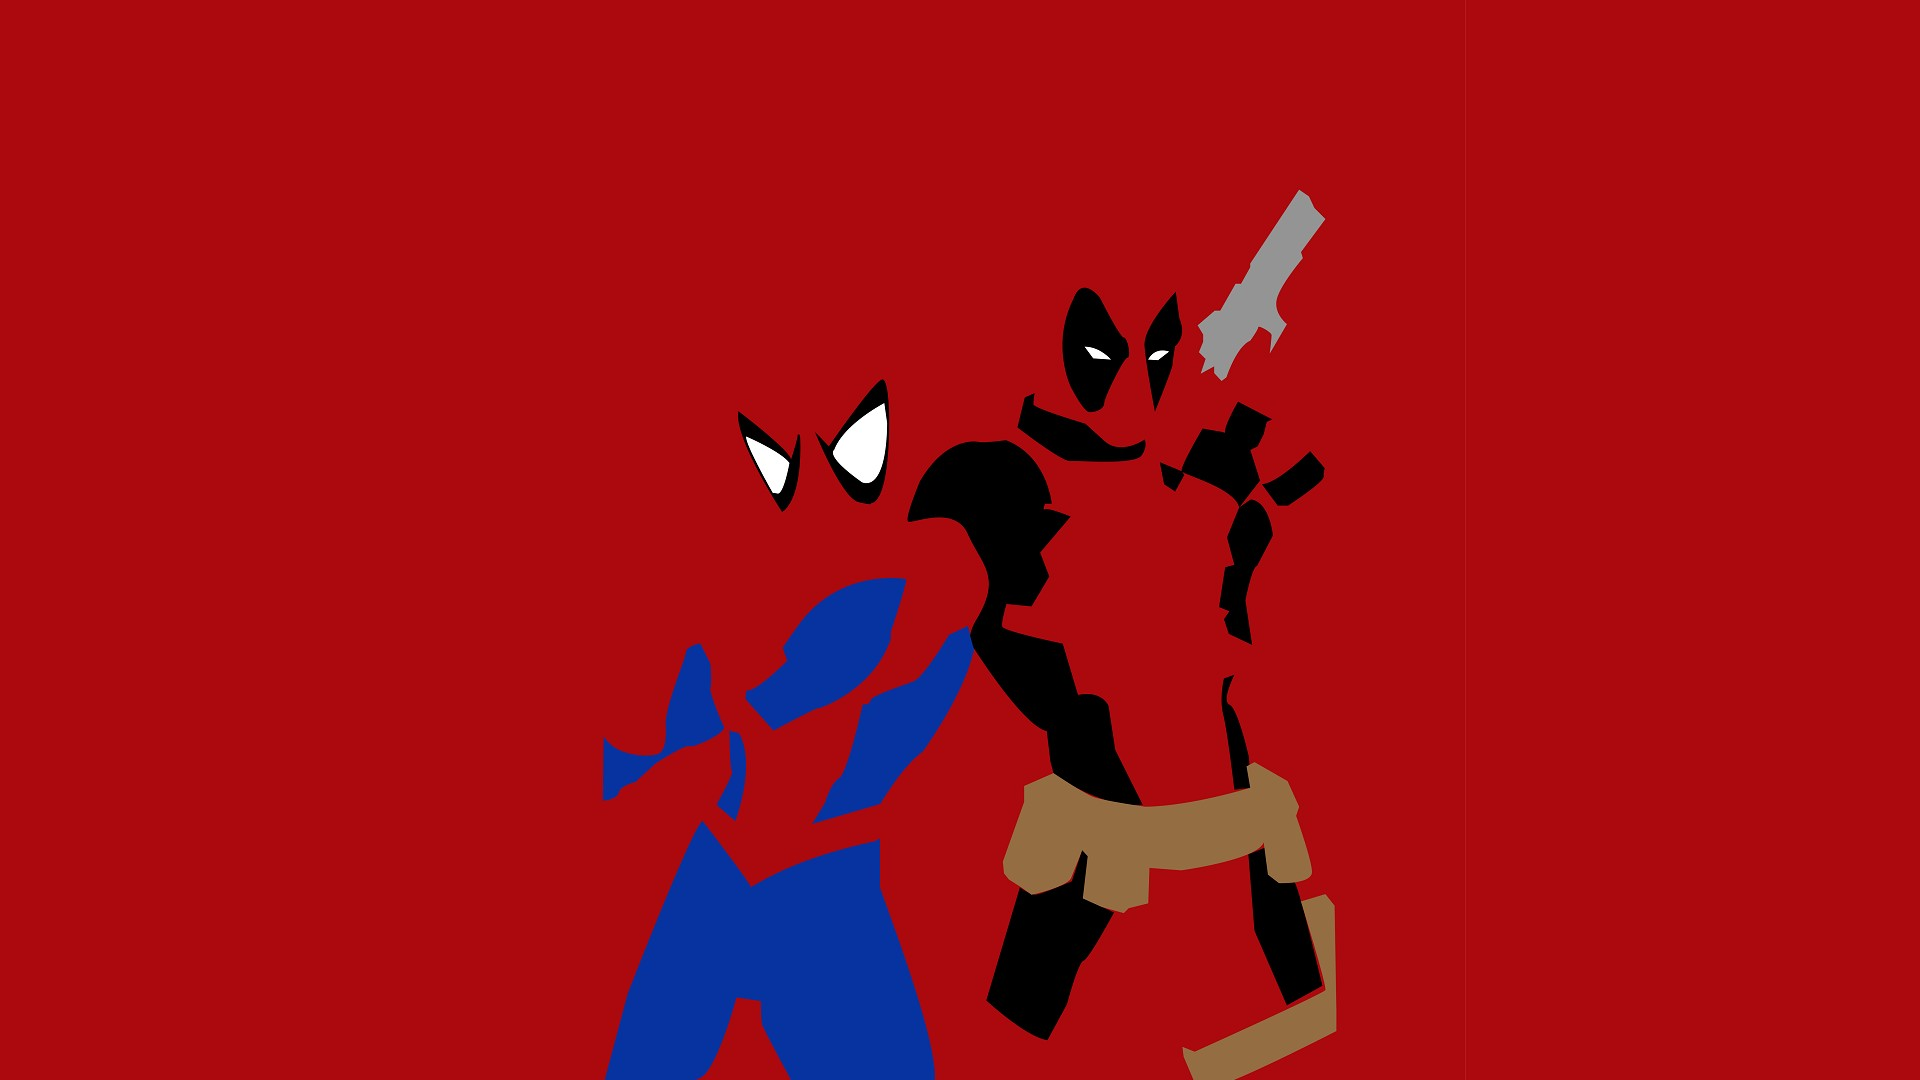 Deadpool and Spider Man Wallpapers 1920x1080